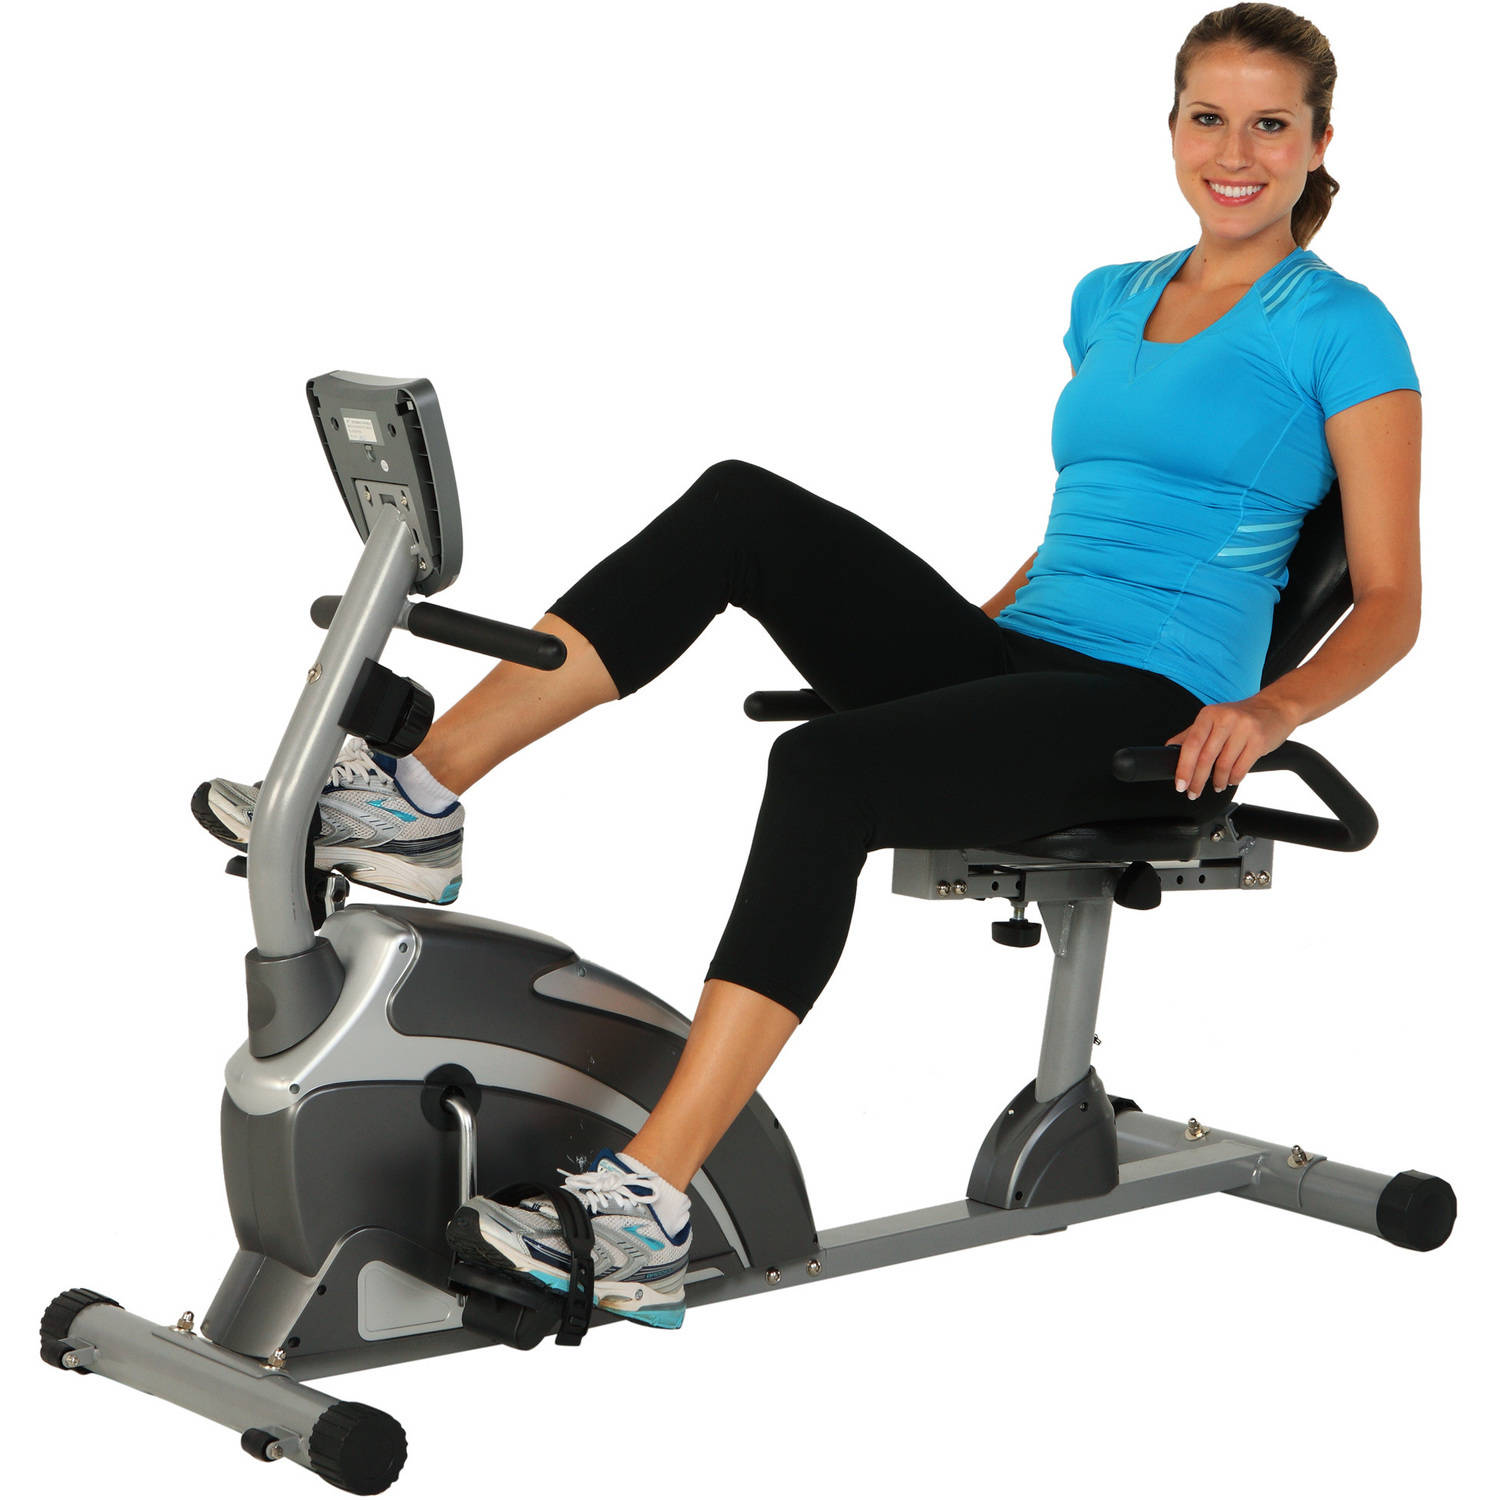 Exerpeutic 1000 High-Capacity Magnetic Recumbent Exercise Bike with Pulse